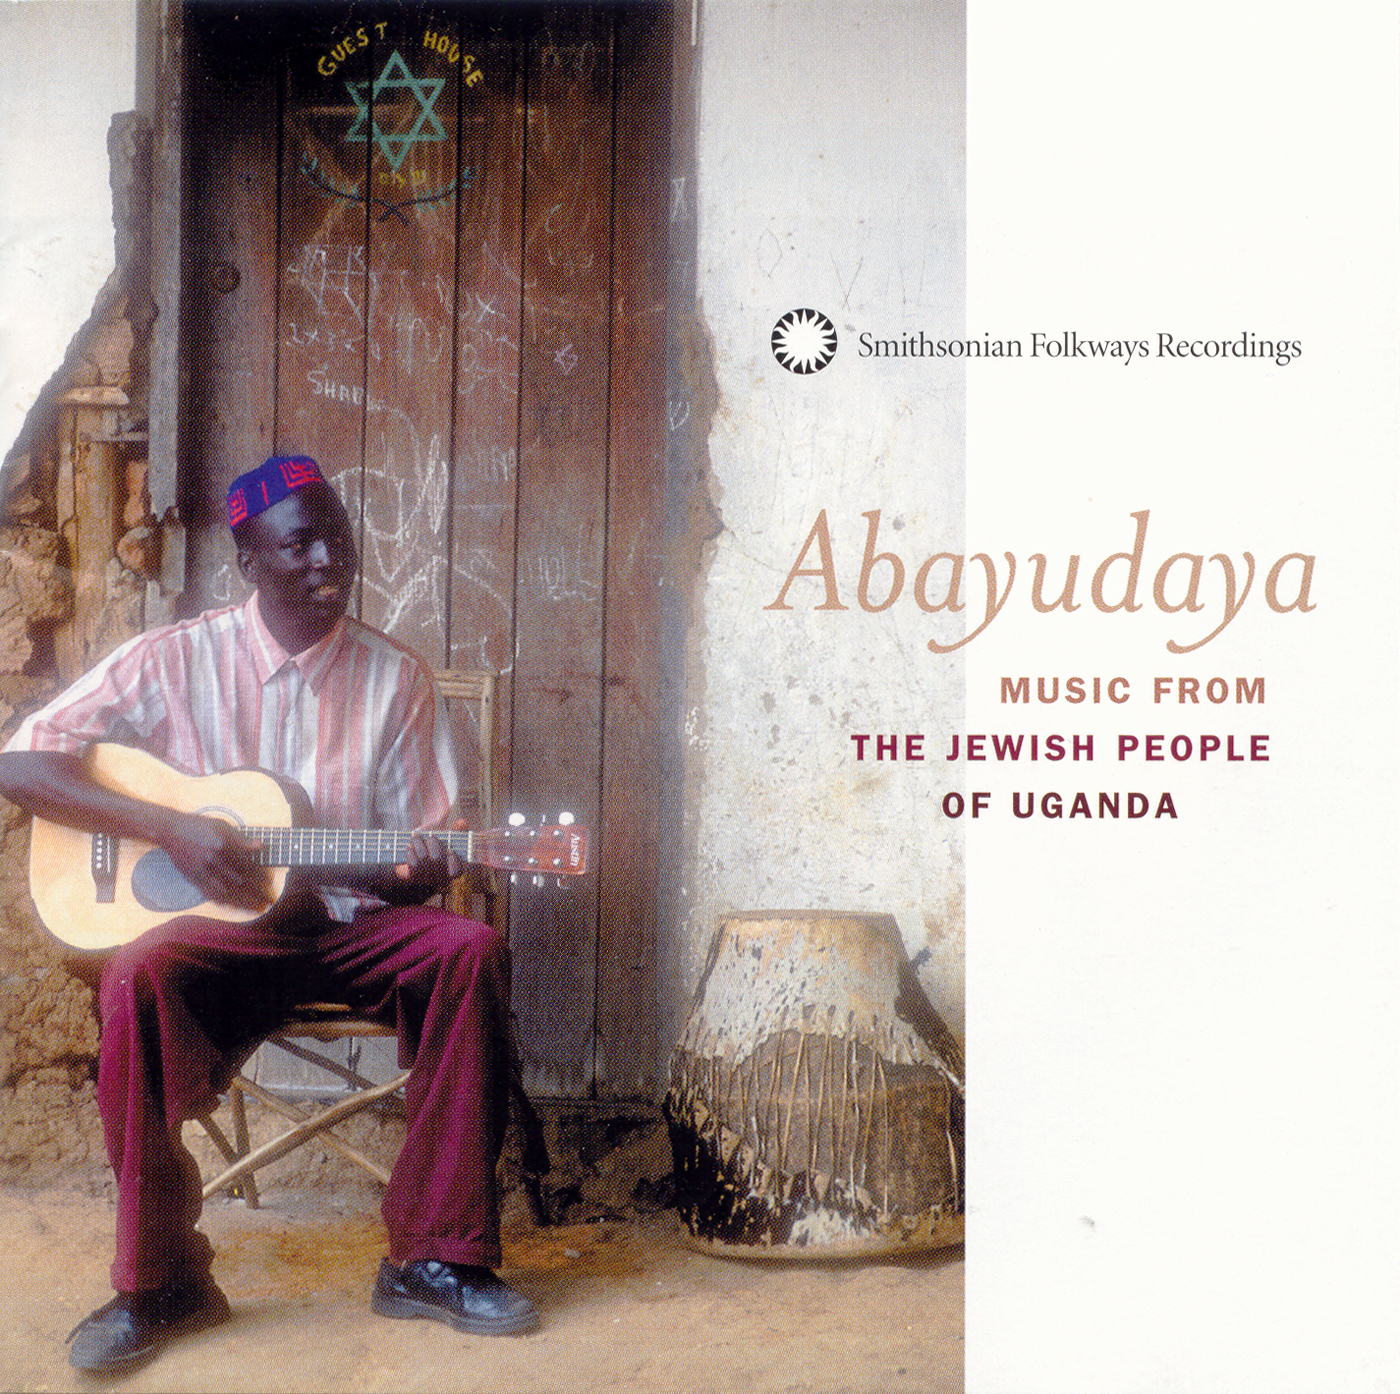 Abayudaya: Music from the Jewish People of Uganda